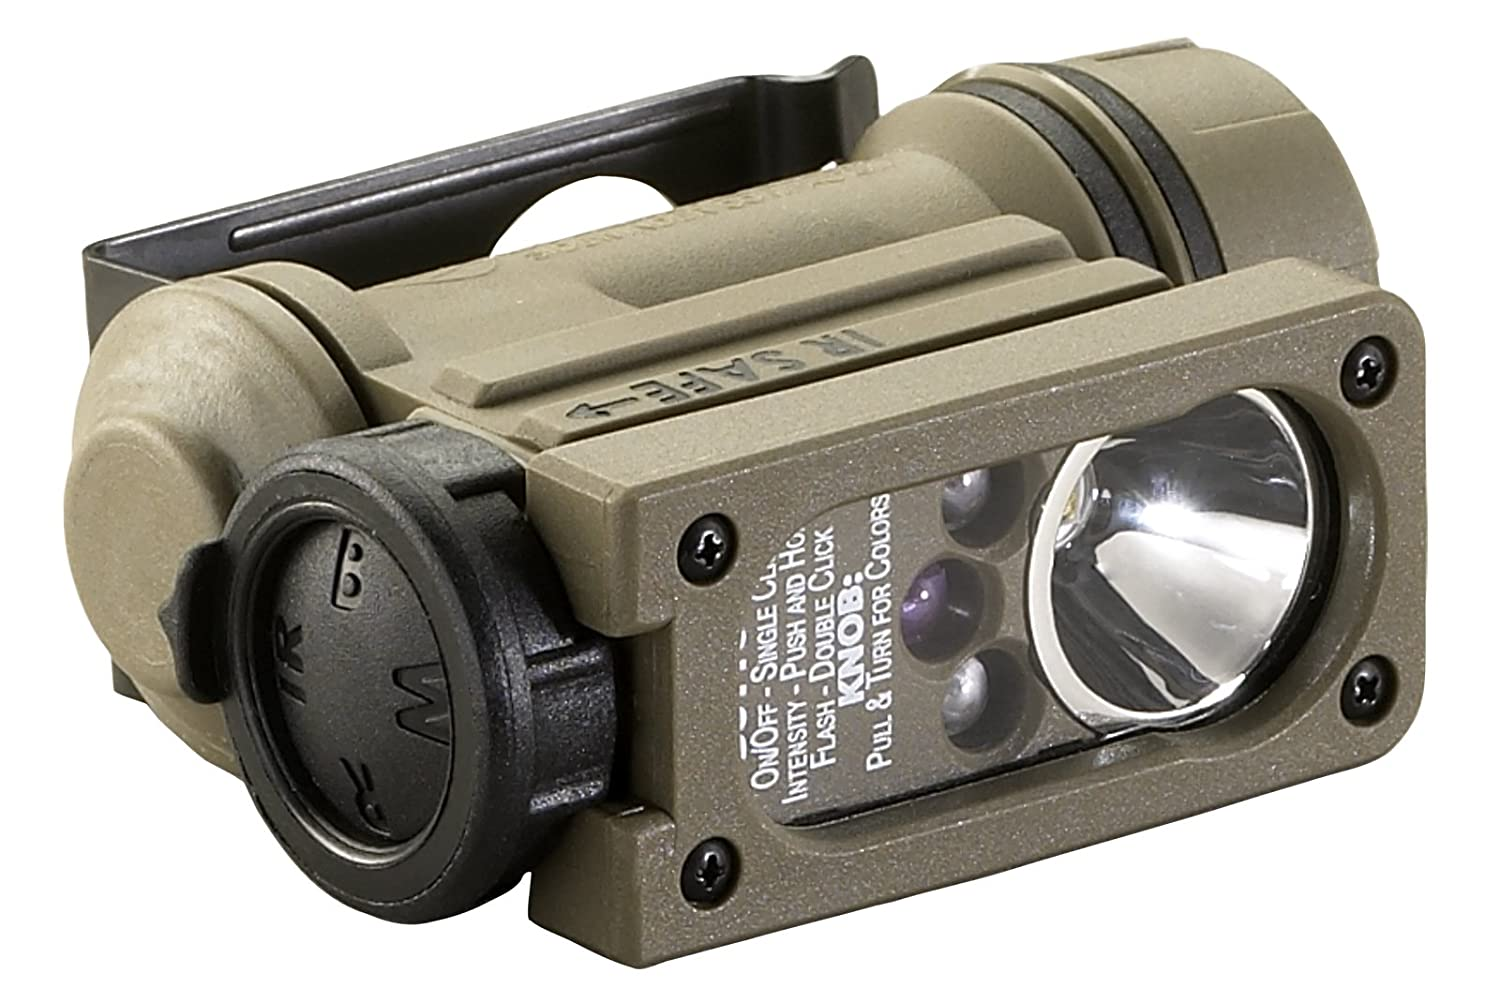 Top Five Best EDC Flashlights for 2015 | Survival